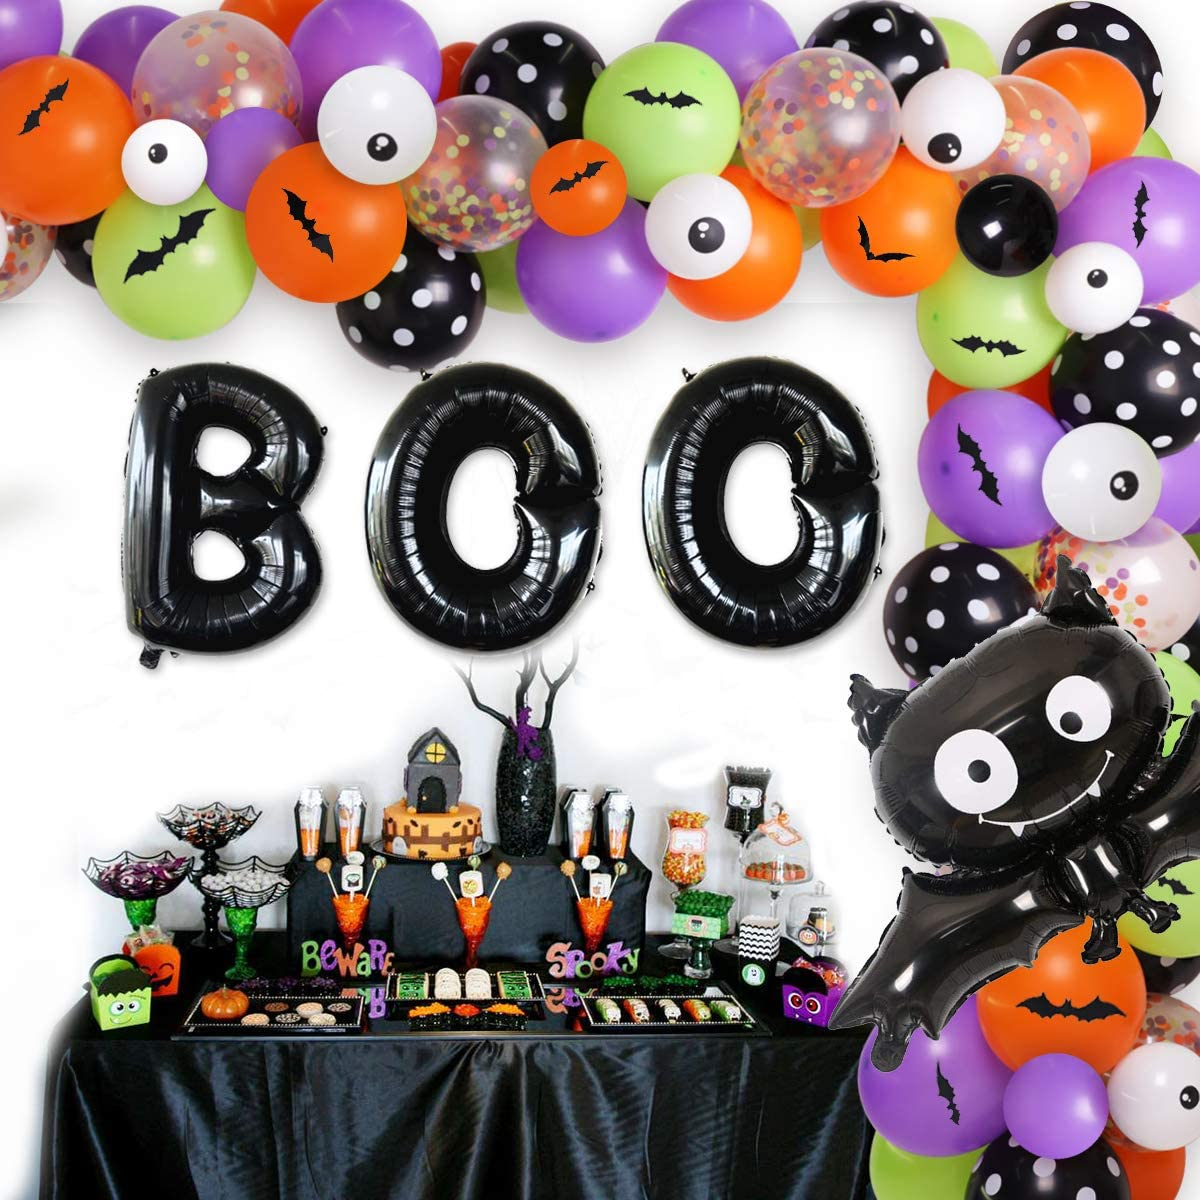 Halloween House Party Decorations Family Balloons Banners Stickers Props Horror